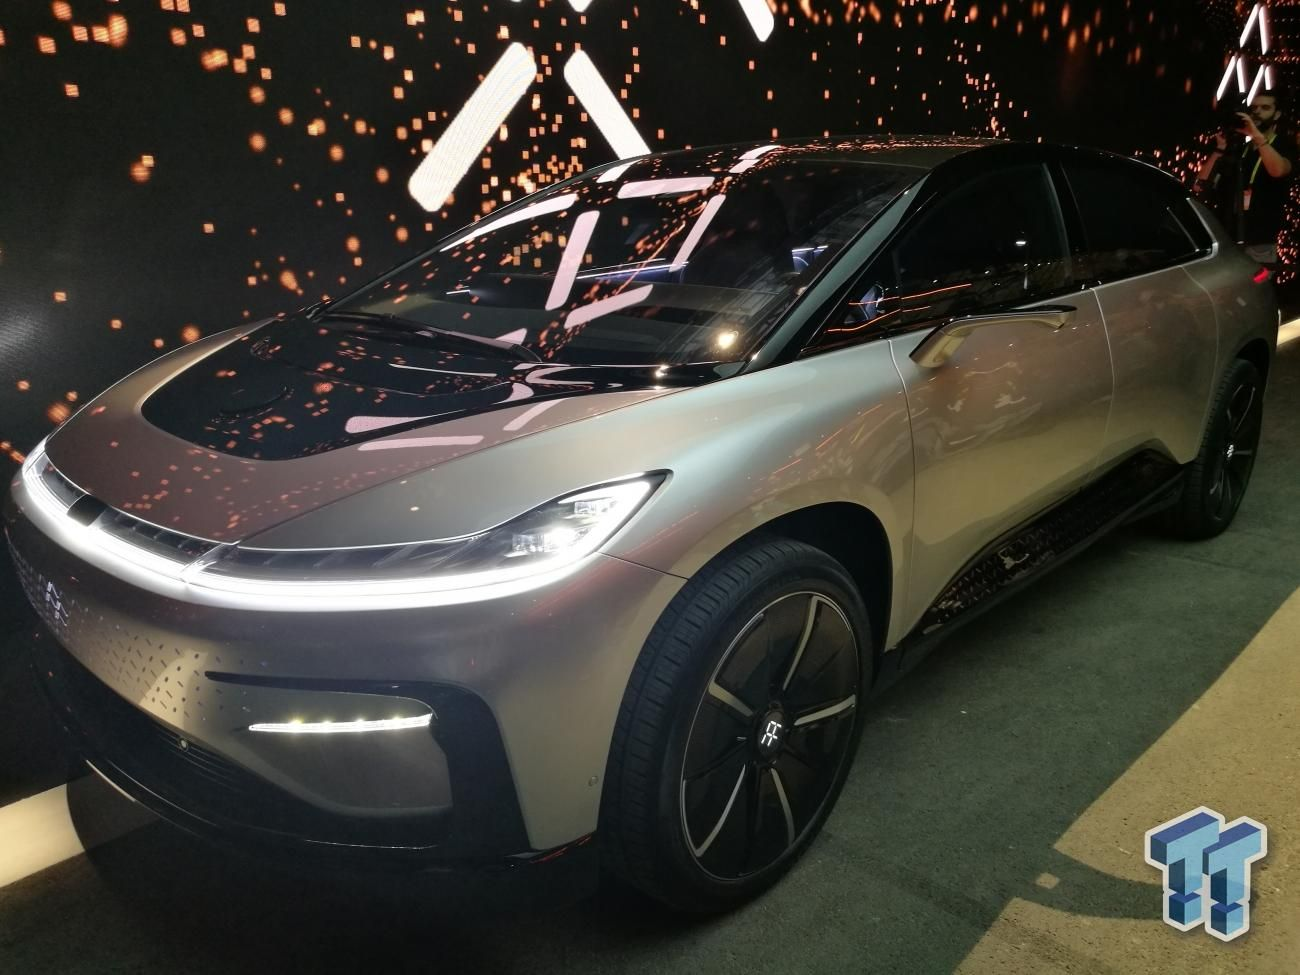 More Than 64 000 People Reserved Faraday Future S Ff 91 Faraday Future Car Instagram